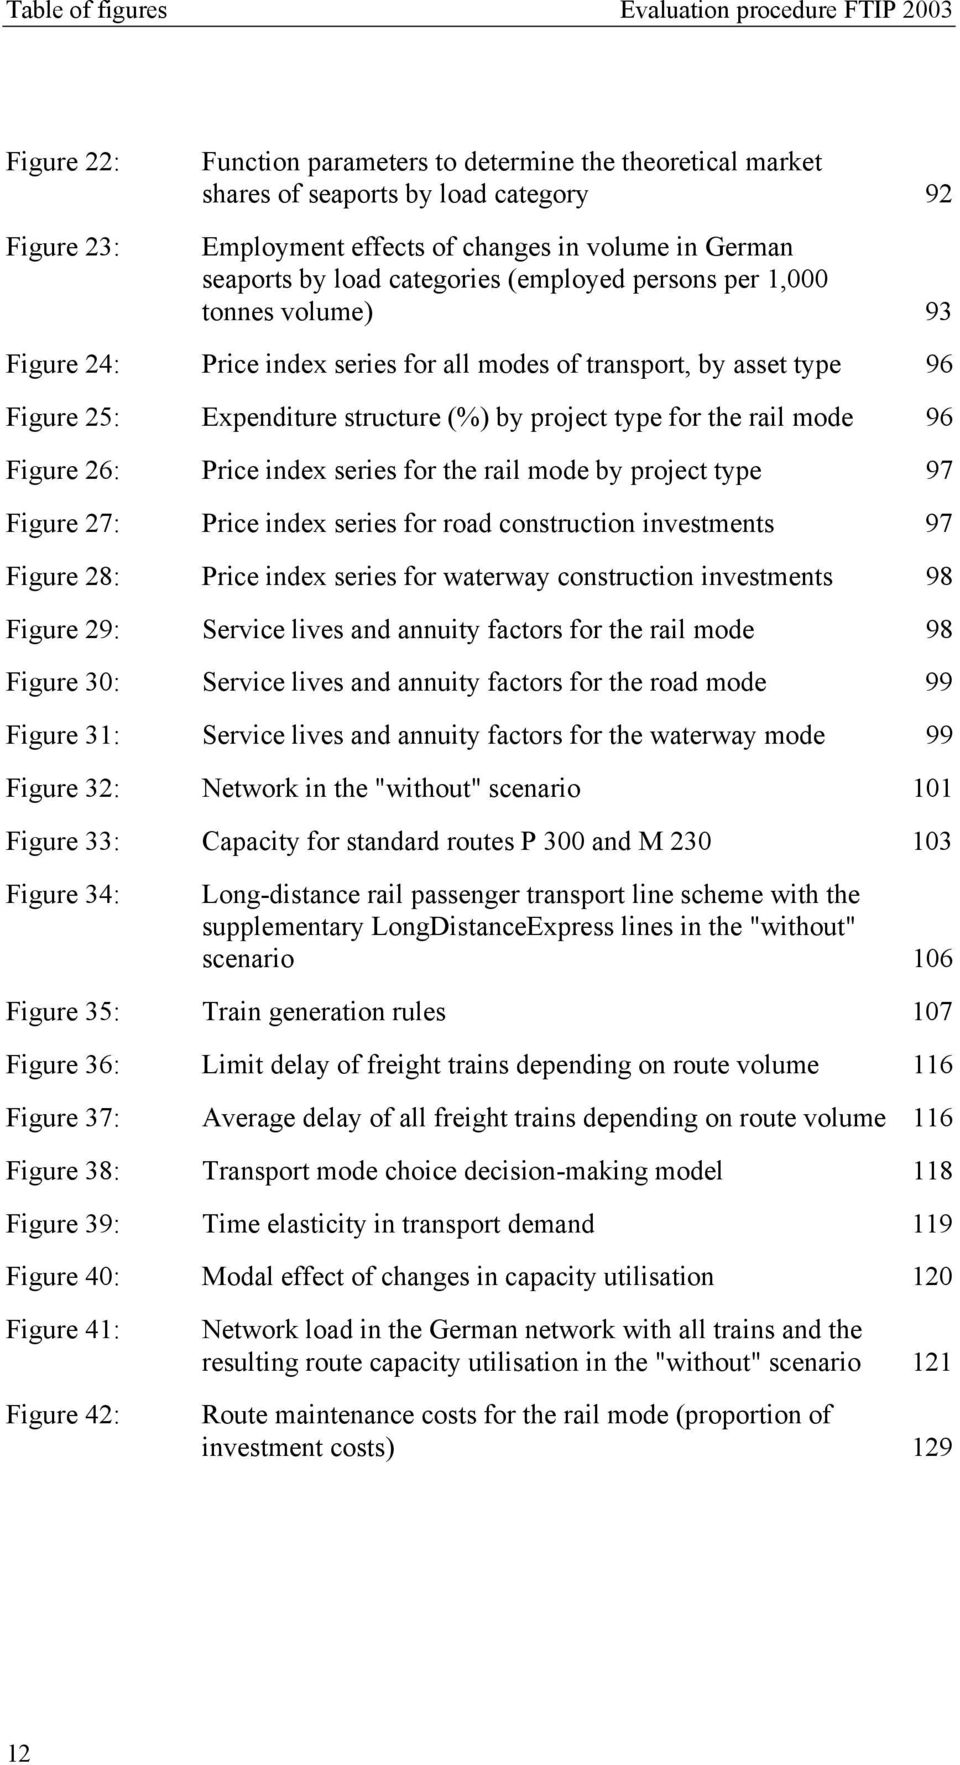 (%) by project type for the rail mode 96 Figure 26: Price index series for the rail mode by project type 97 Figure 27: Price index series for road construction investments 97 Figure 28: Price index